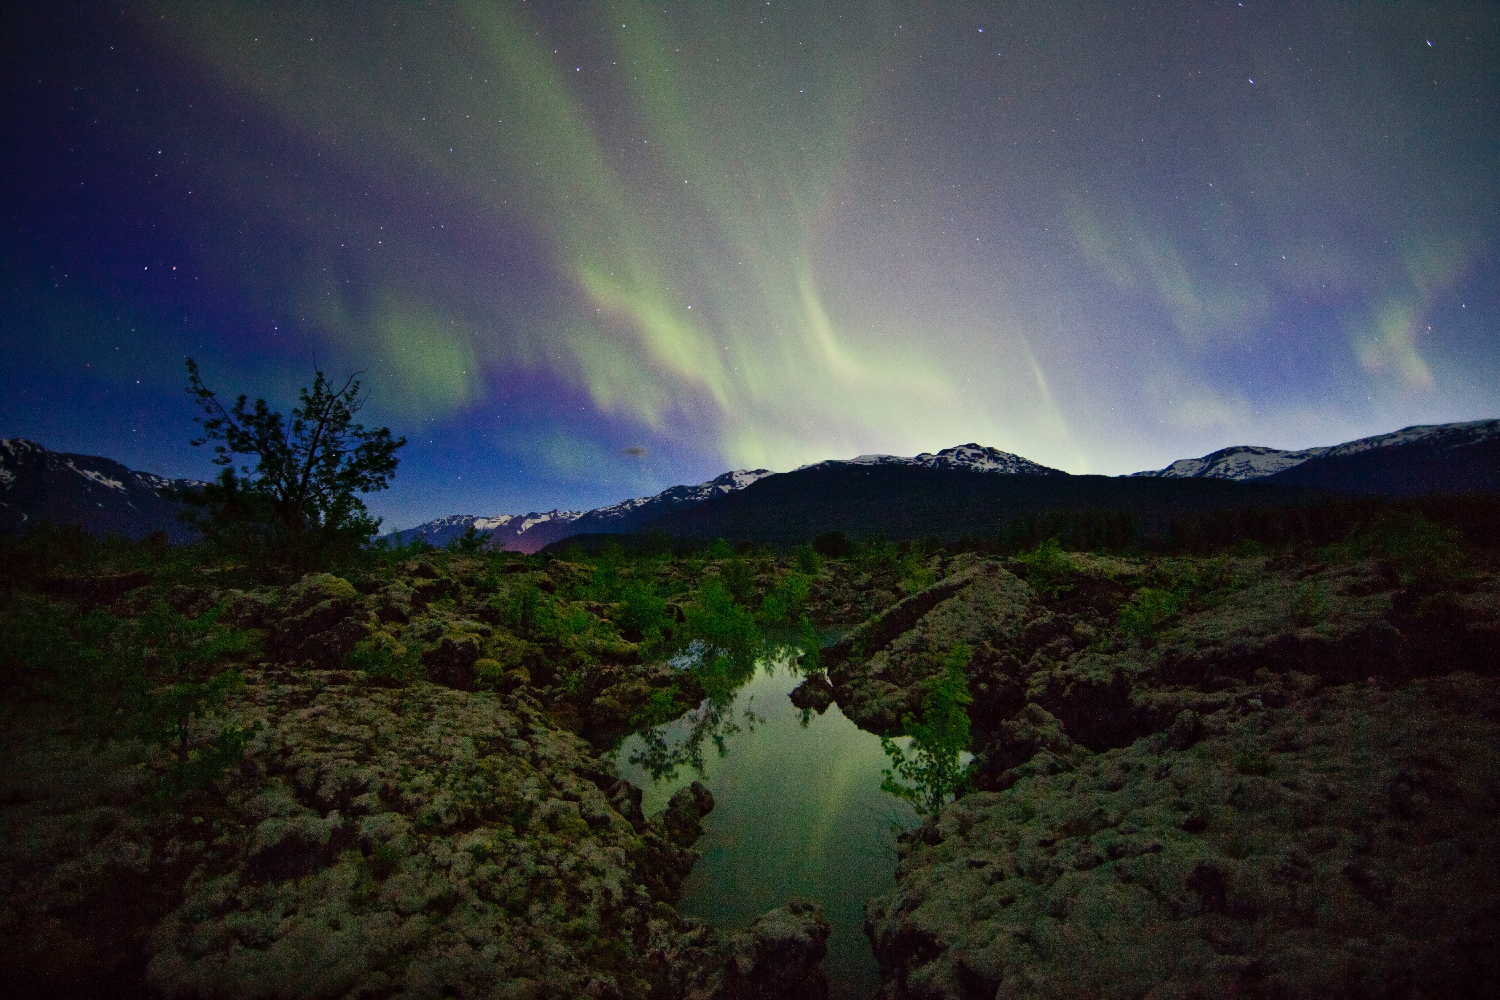 The aurora borealis over the Nisga'a Memorial Lava Beds north of Terrace, BC.